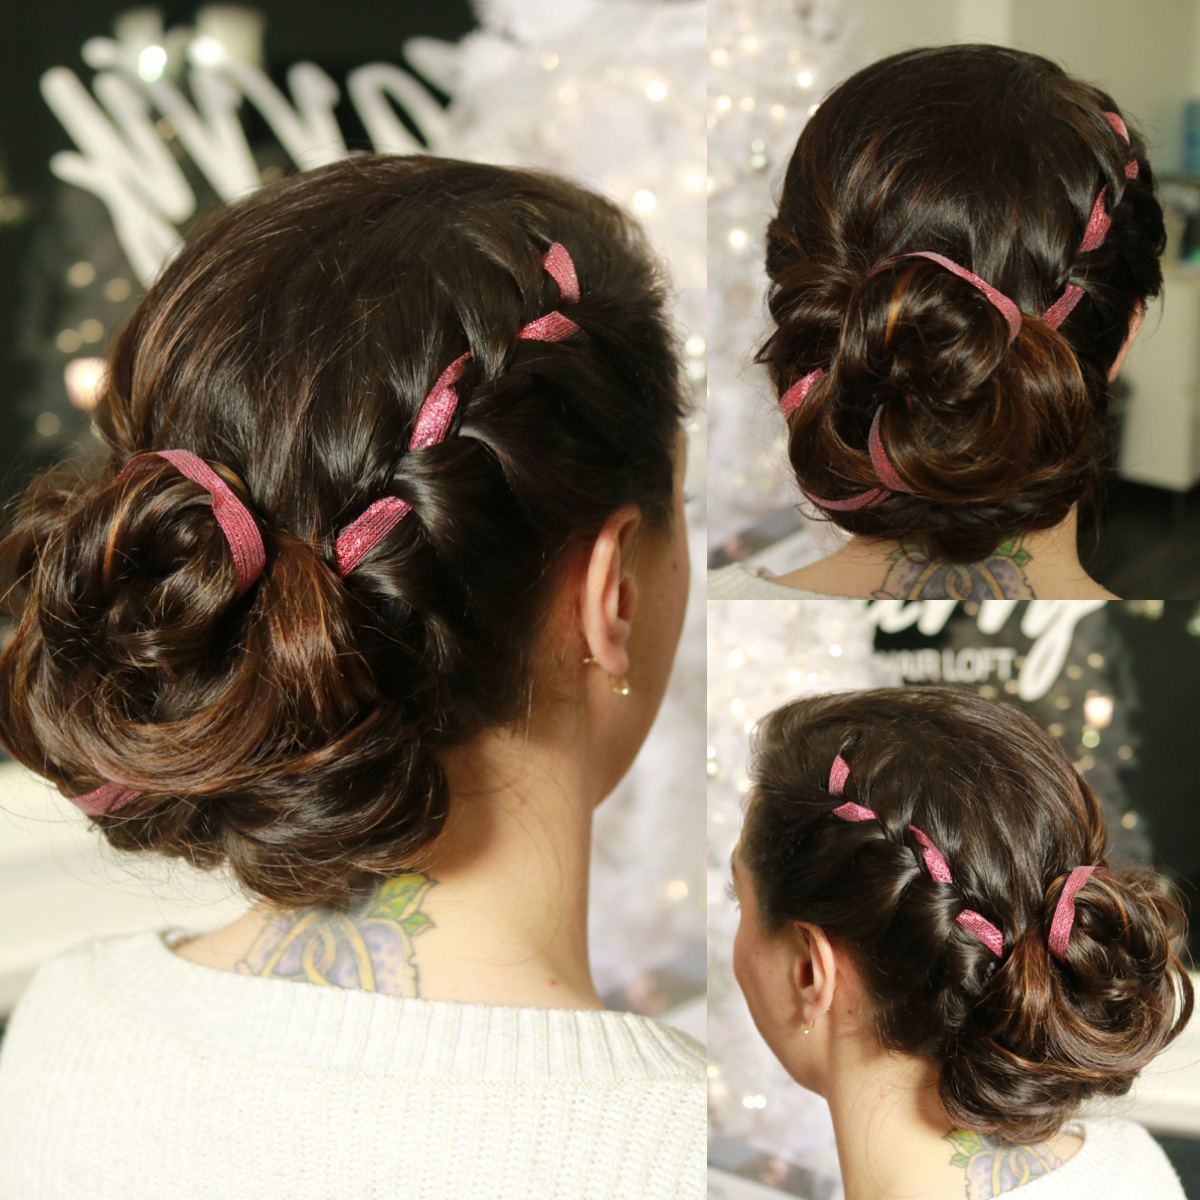 Deck your braids with festive holiday ribbon | Styled by Katie K